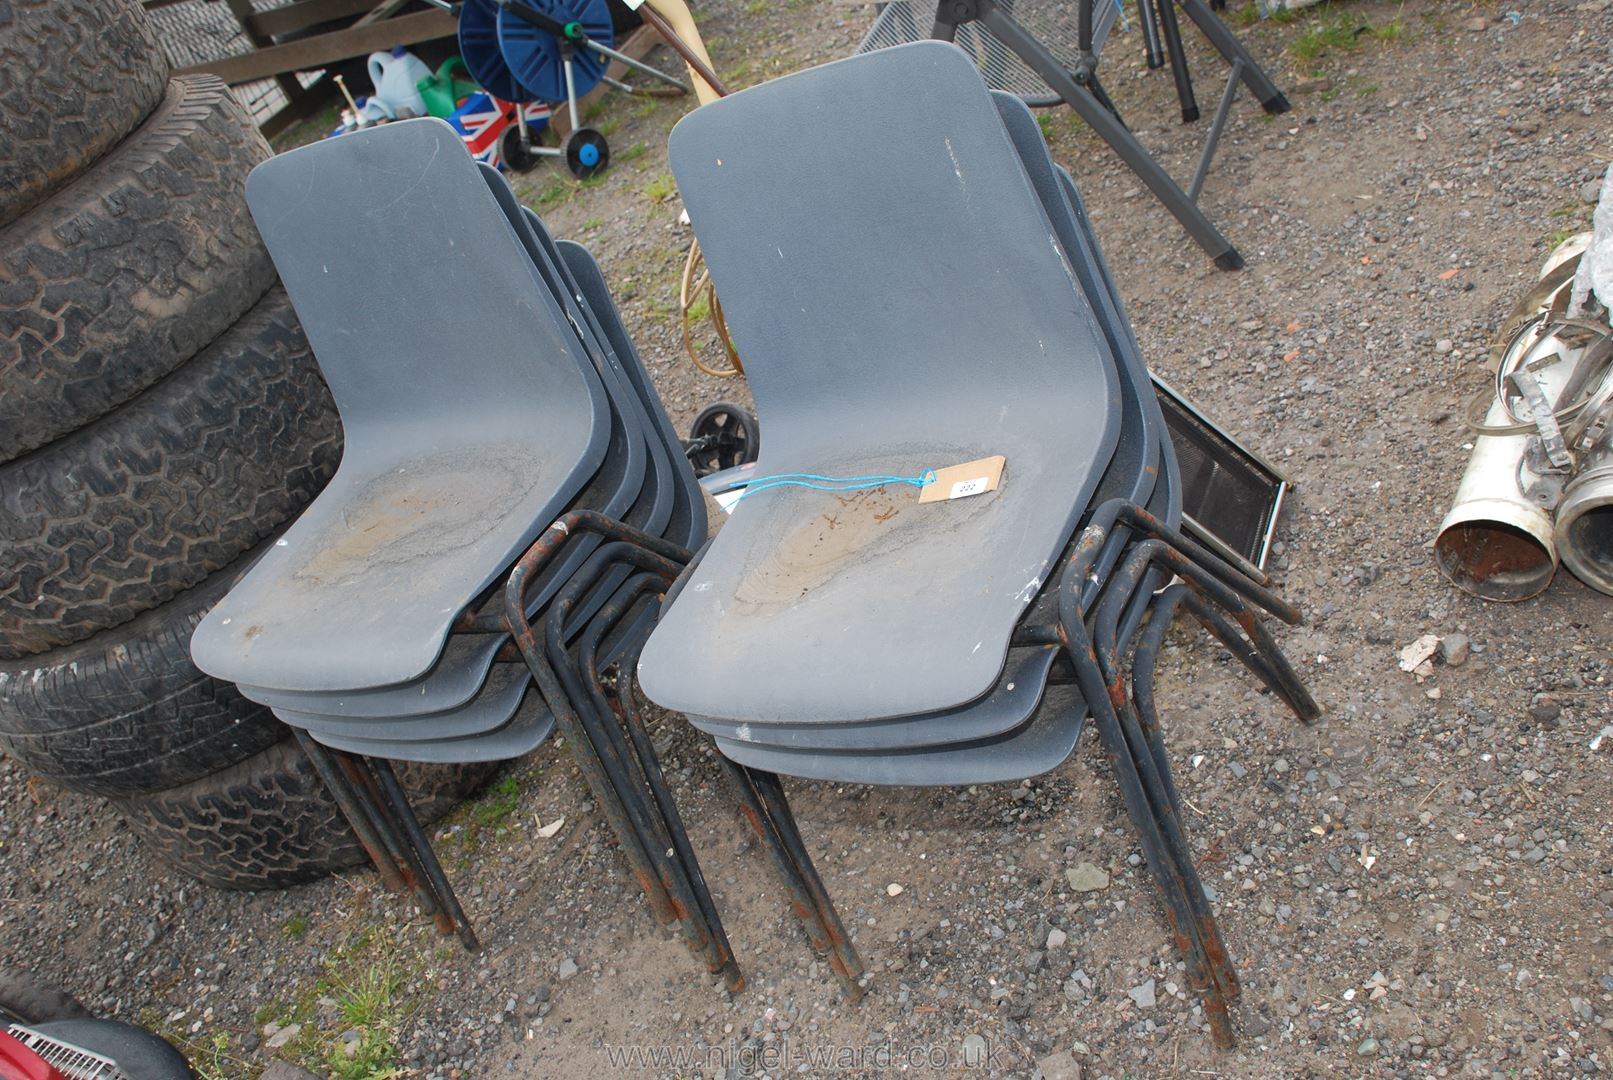 Seven school style stacking Chairs.